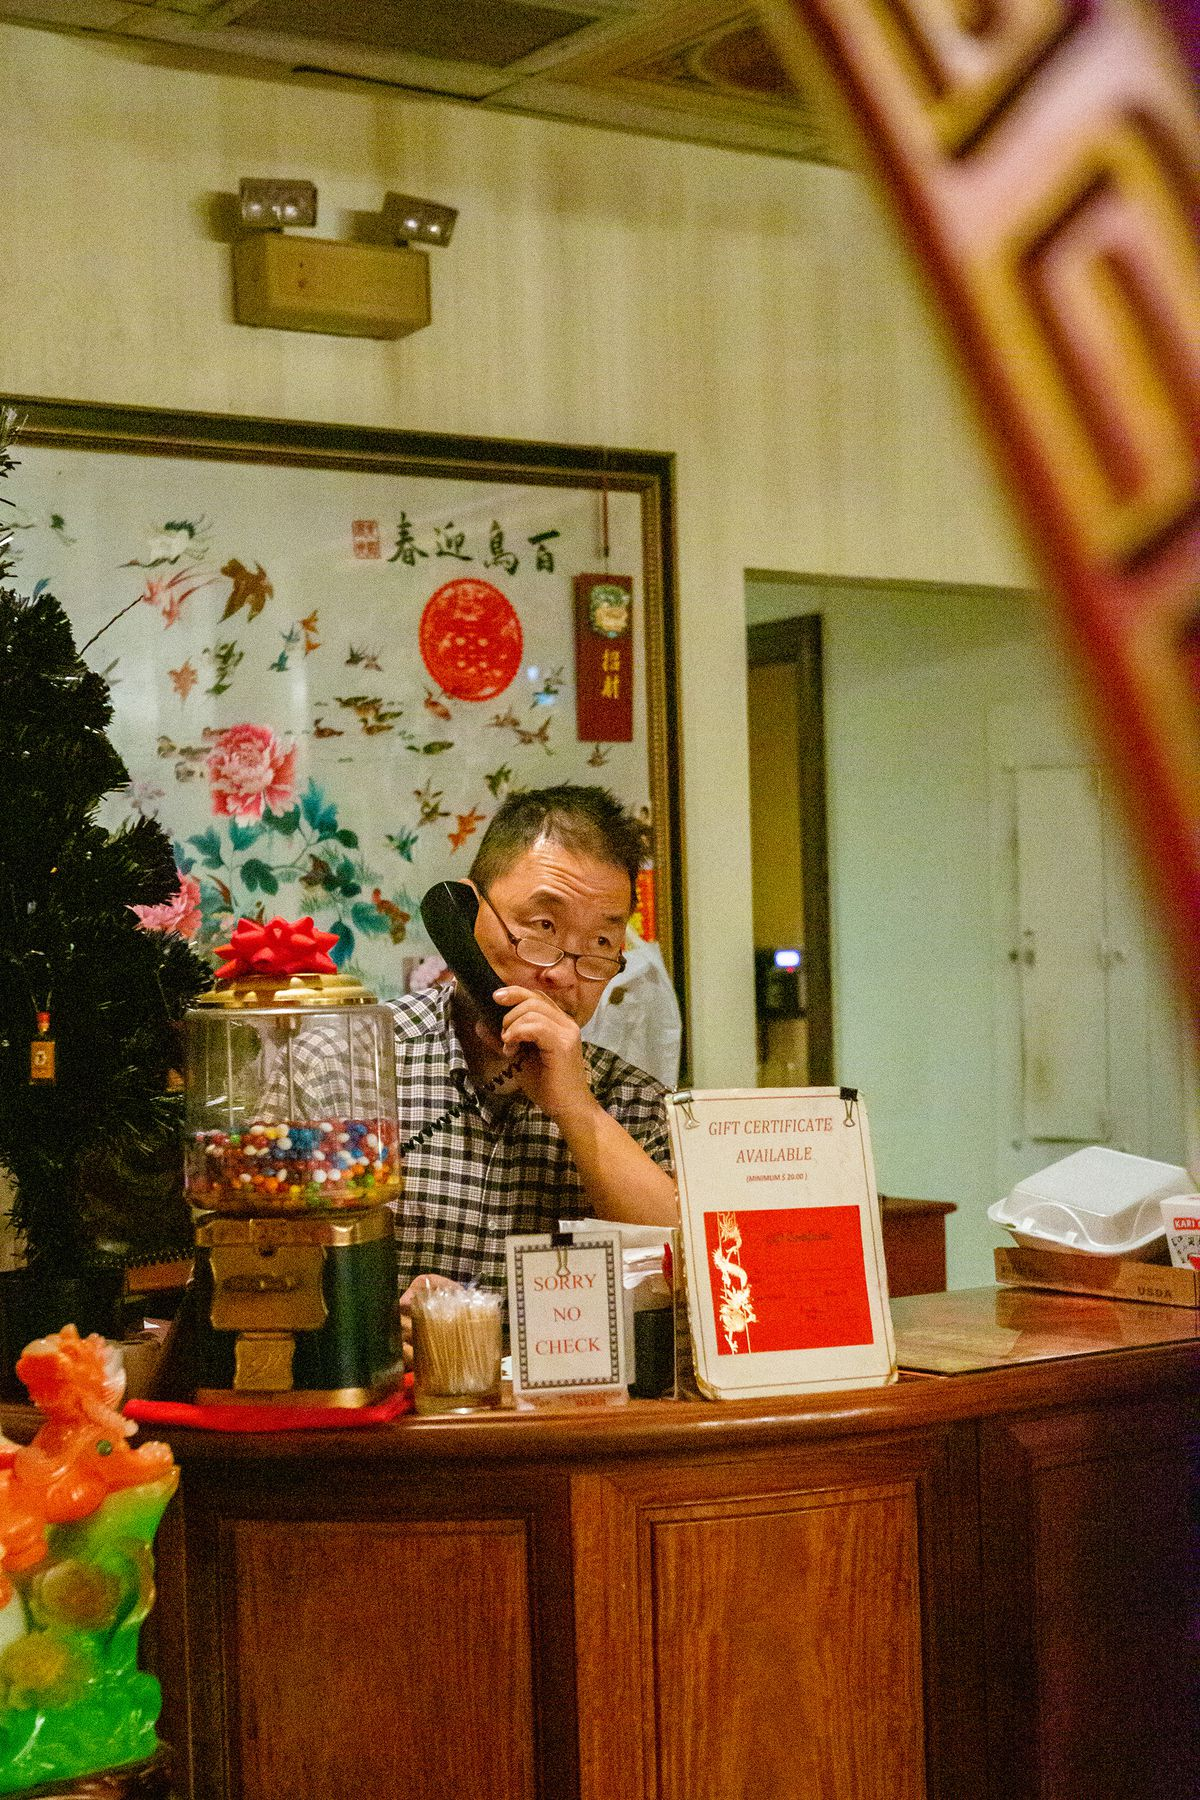 Man on phone sitting behind a counter.